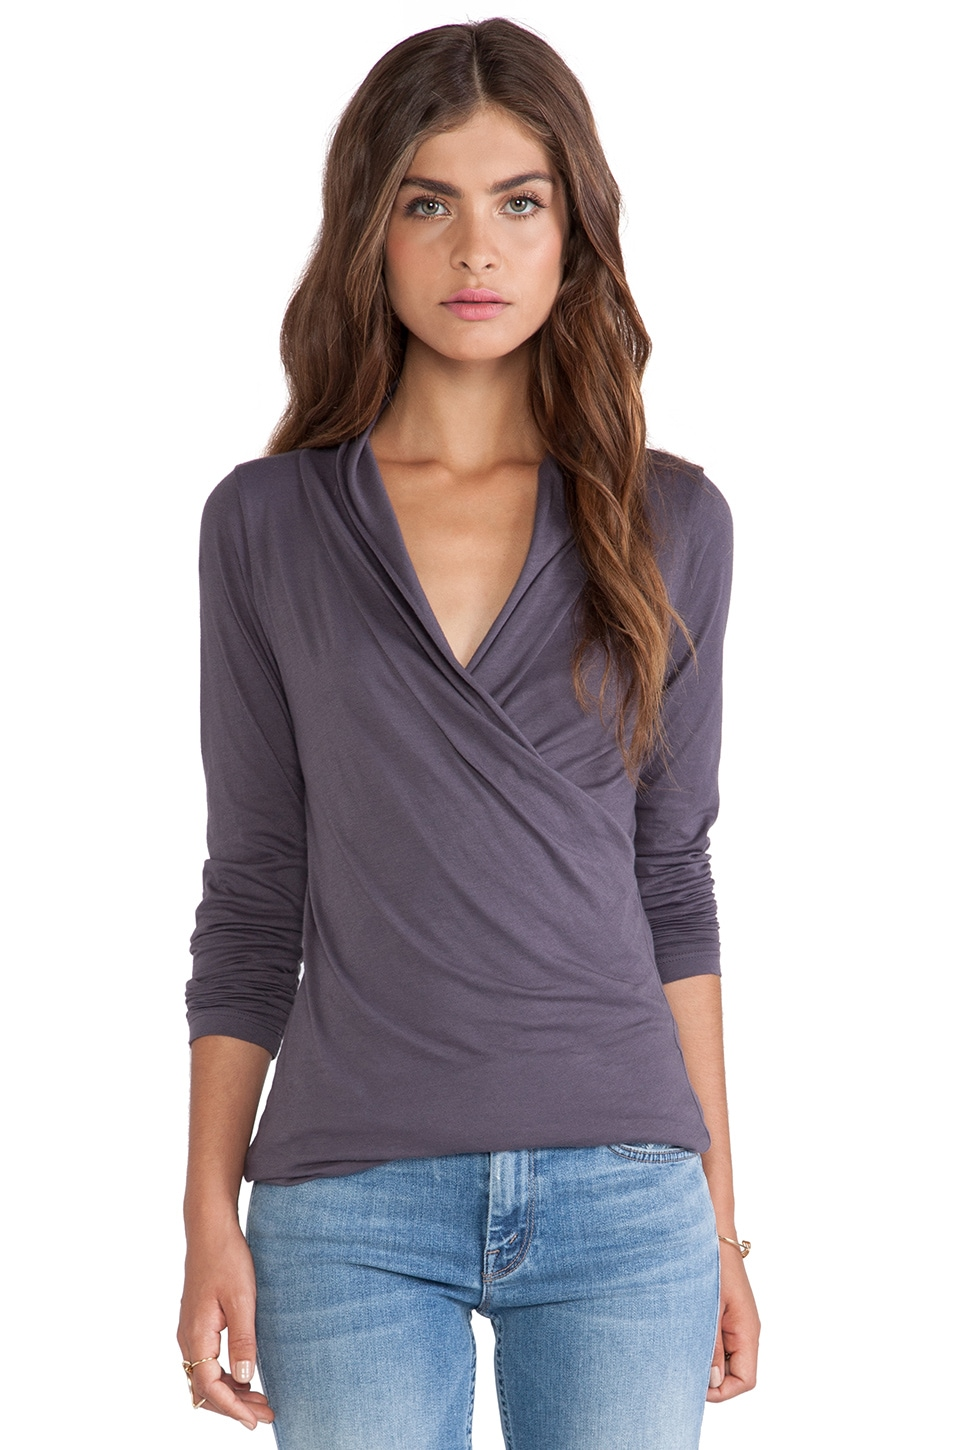 Velvet by Graham & Spencer Meri Gauzy Whisper Top in Exhaust